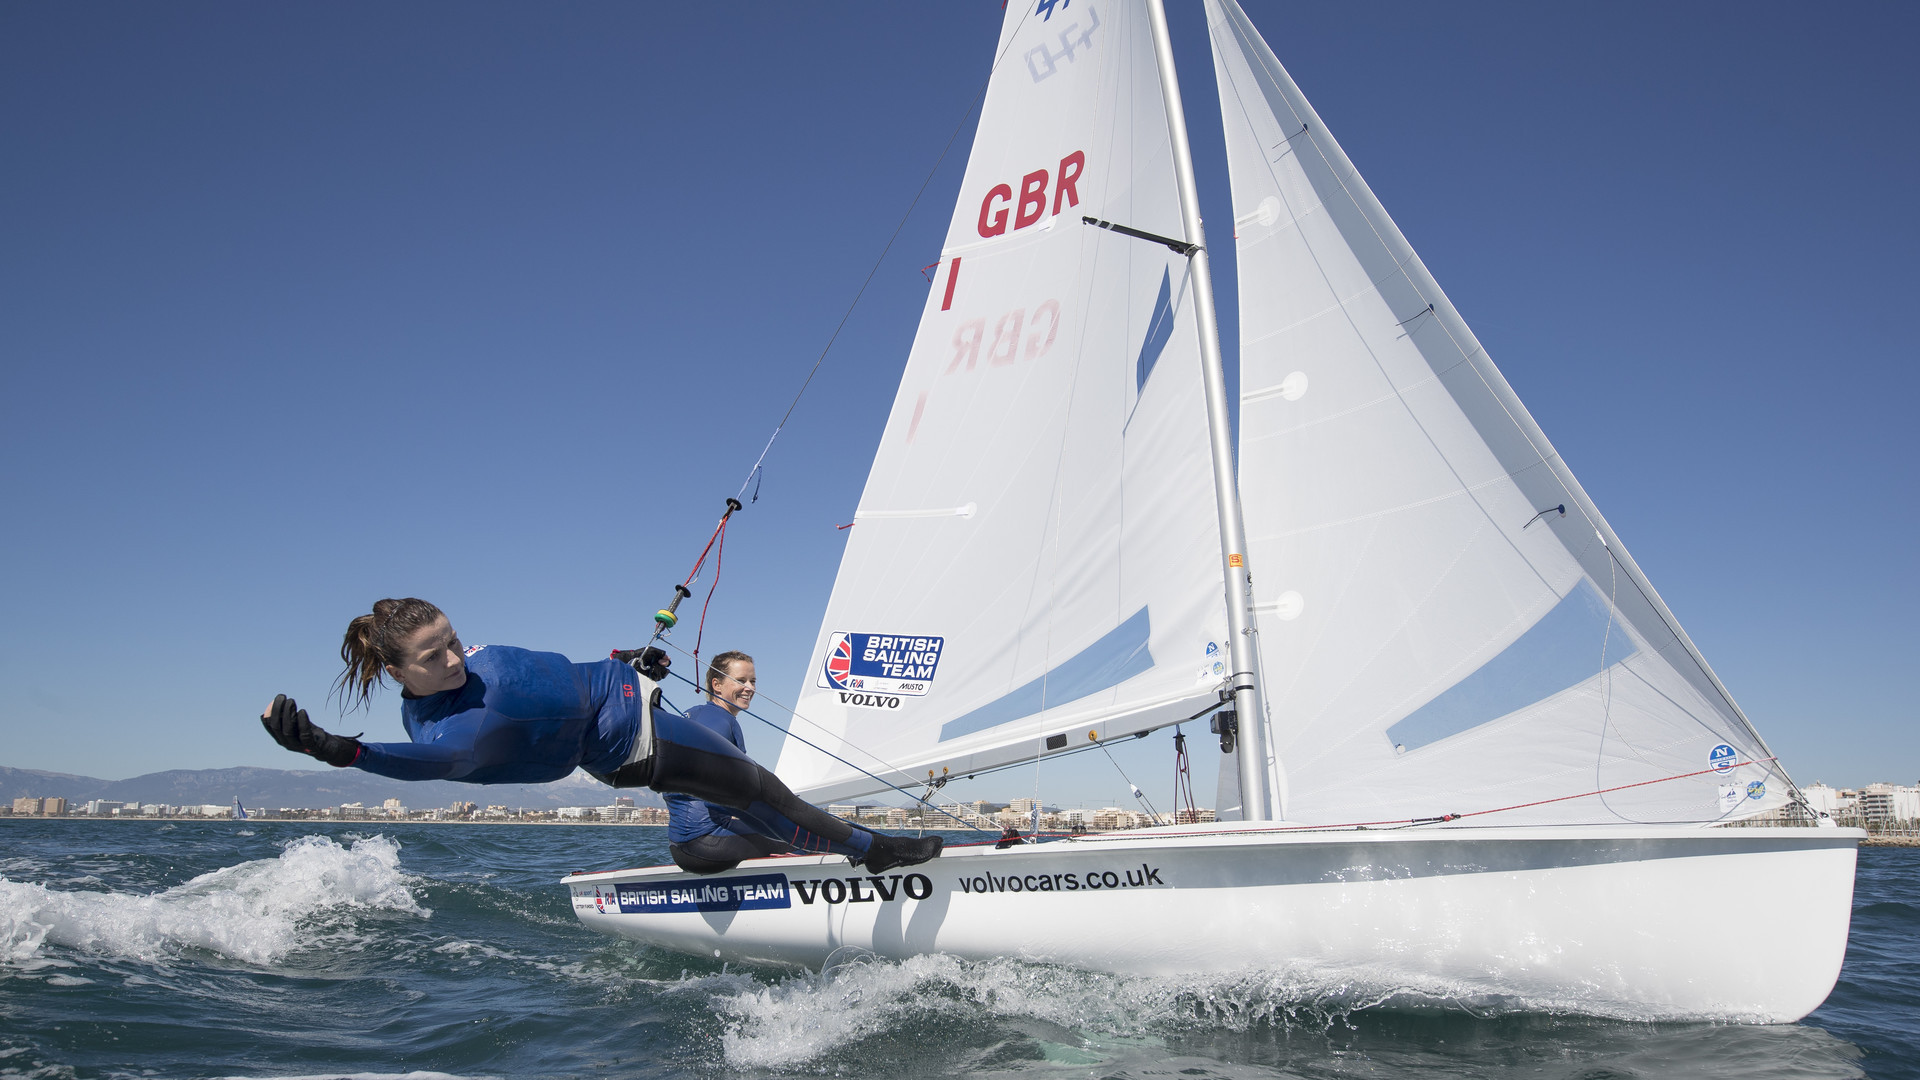 British Sailing team prepare to move to next stage of training